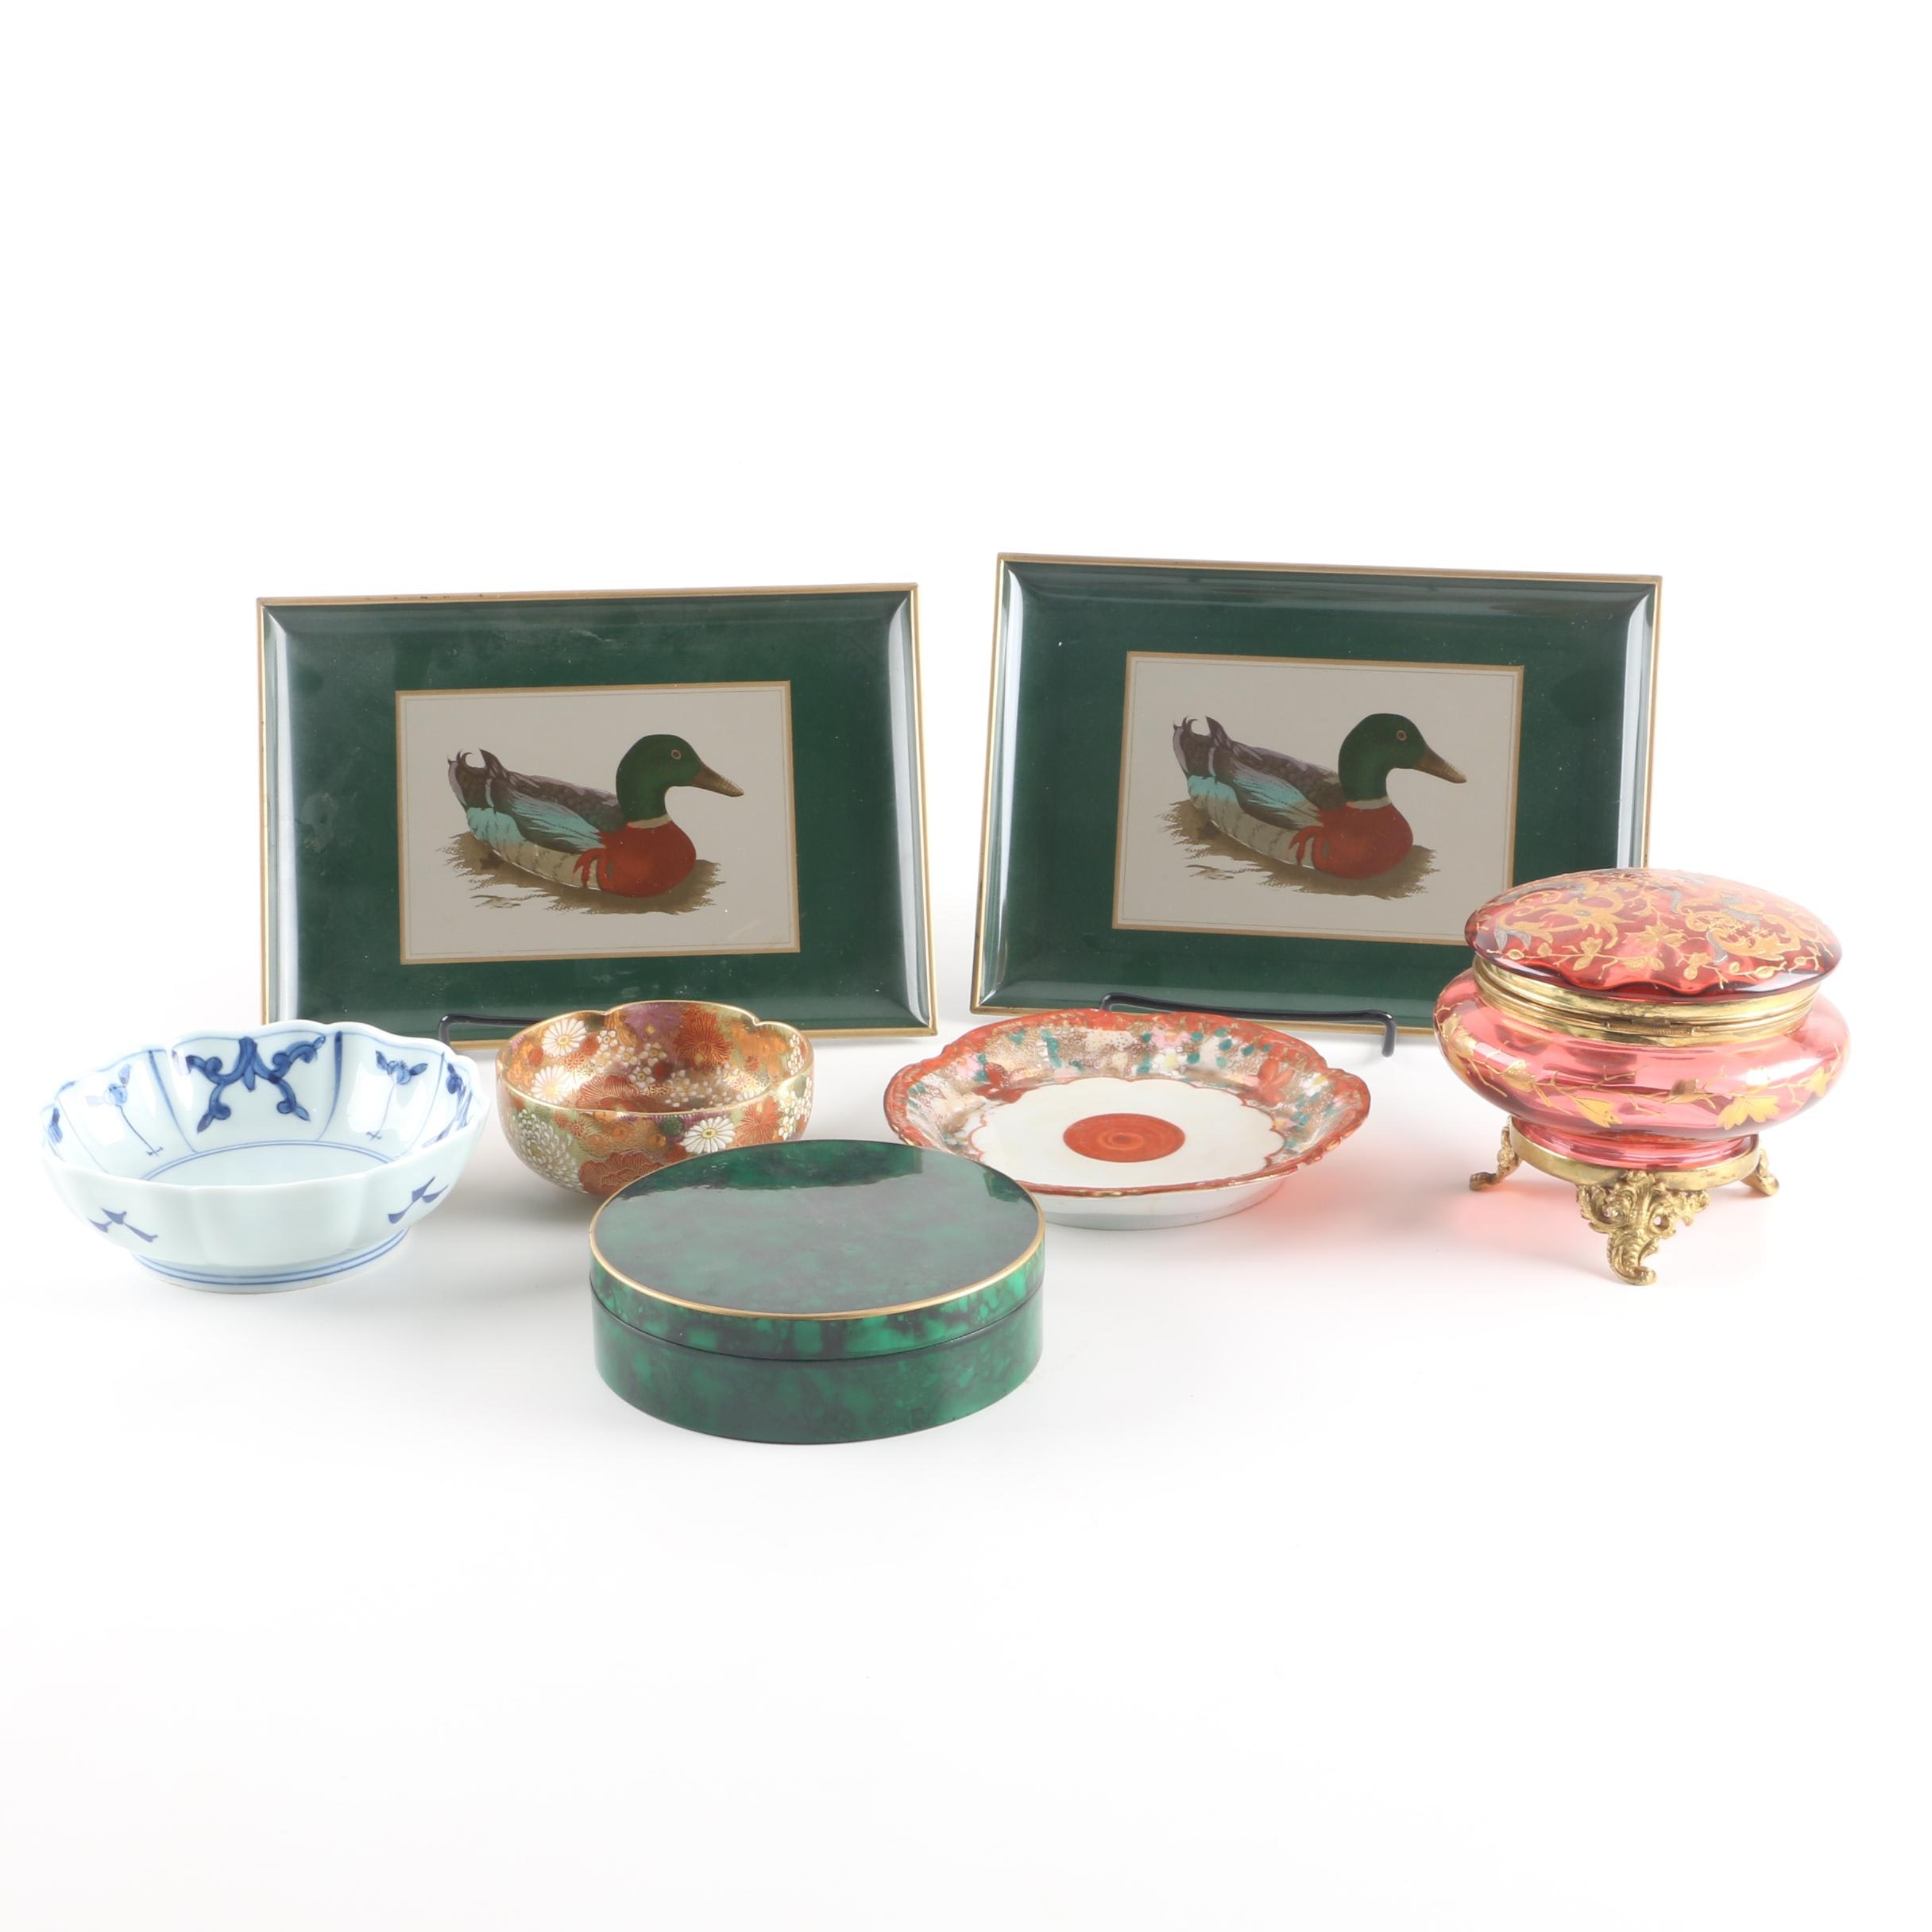 Japanese Decorative Tableware Including Otagiri Lacquered Trays and Coasters